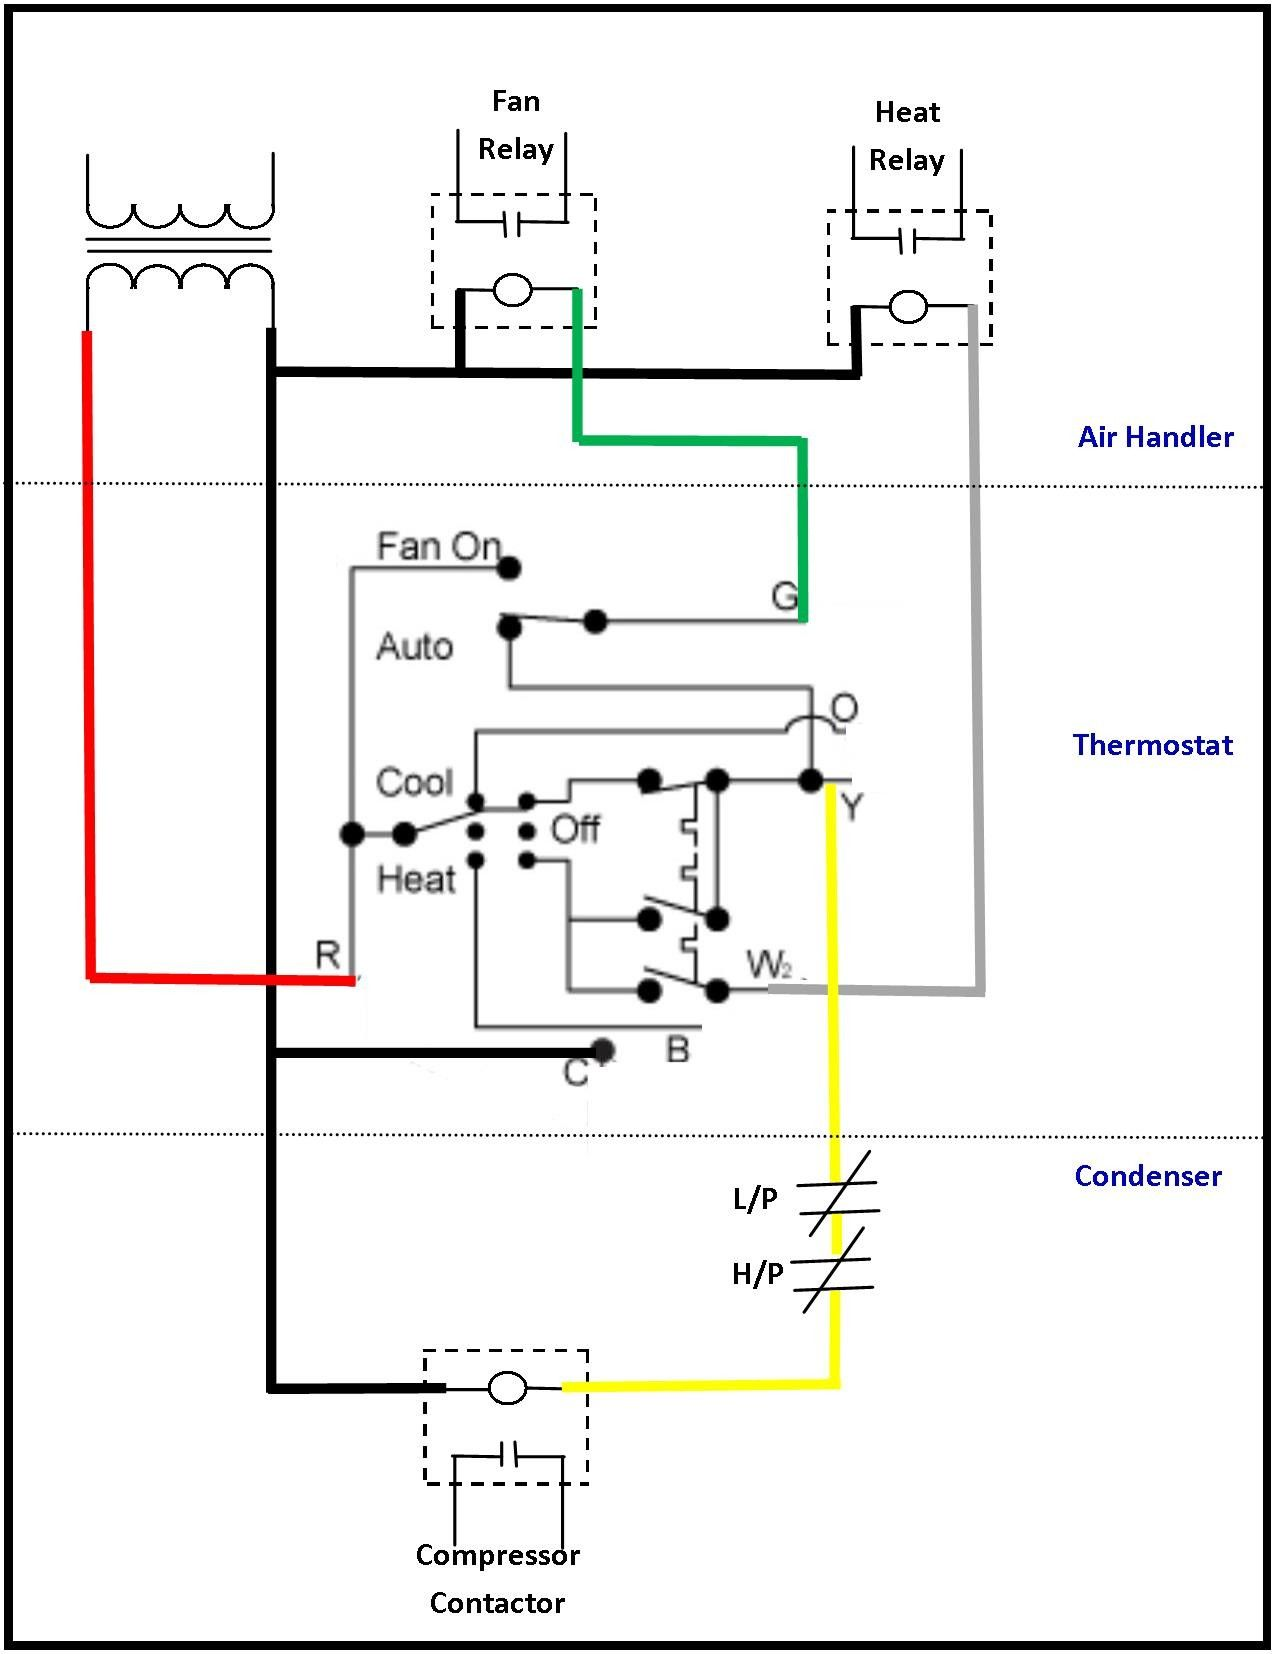 New Basic Engine Wiring Diagram Wiringdiagram Diagramming Diagramm Visuals Visualisation Graphica Thermostat Wiring Ac Wiring Electrical Circuit Diagram